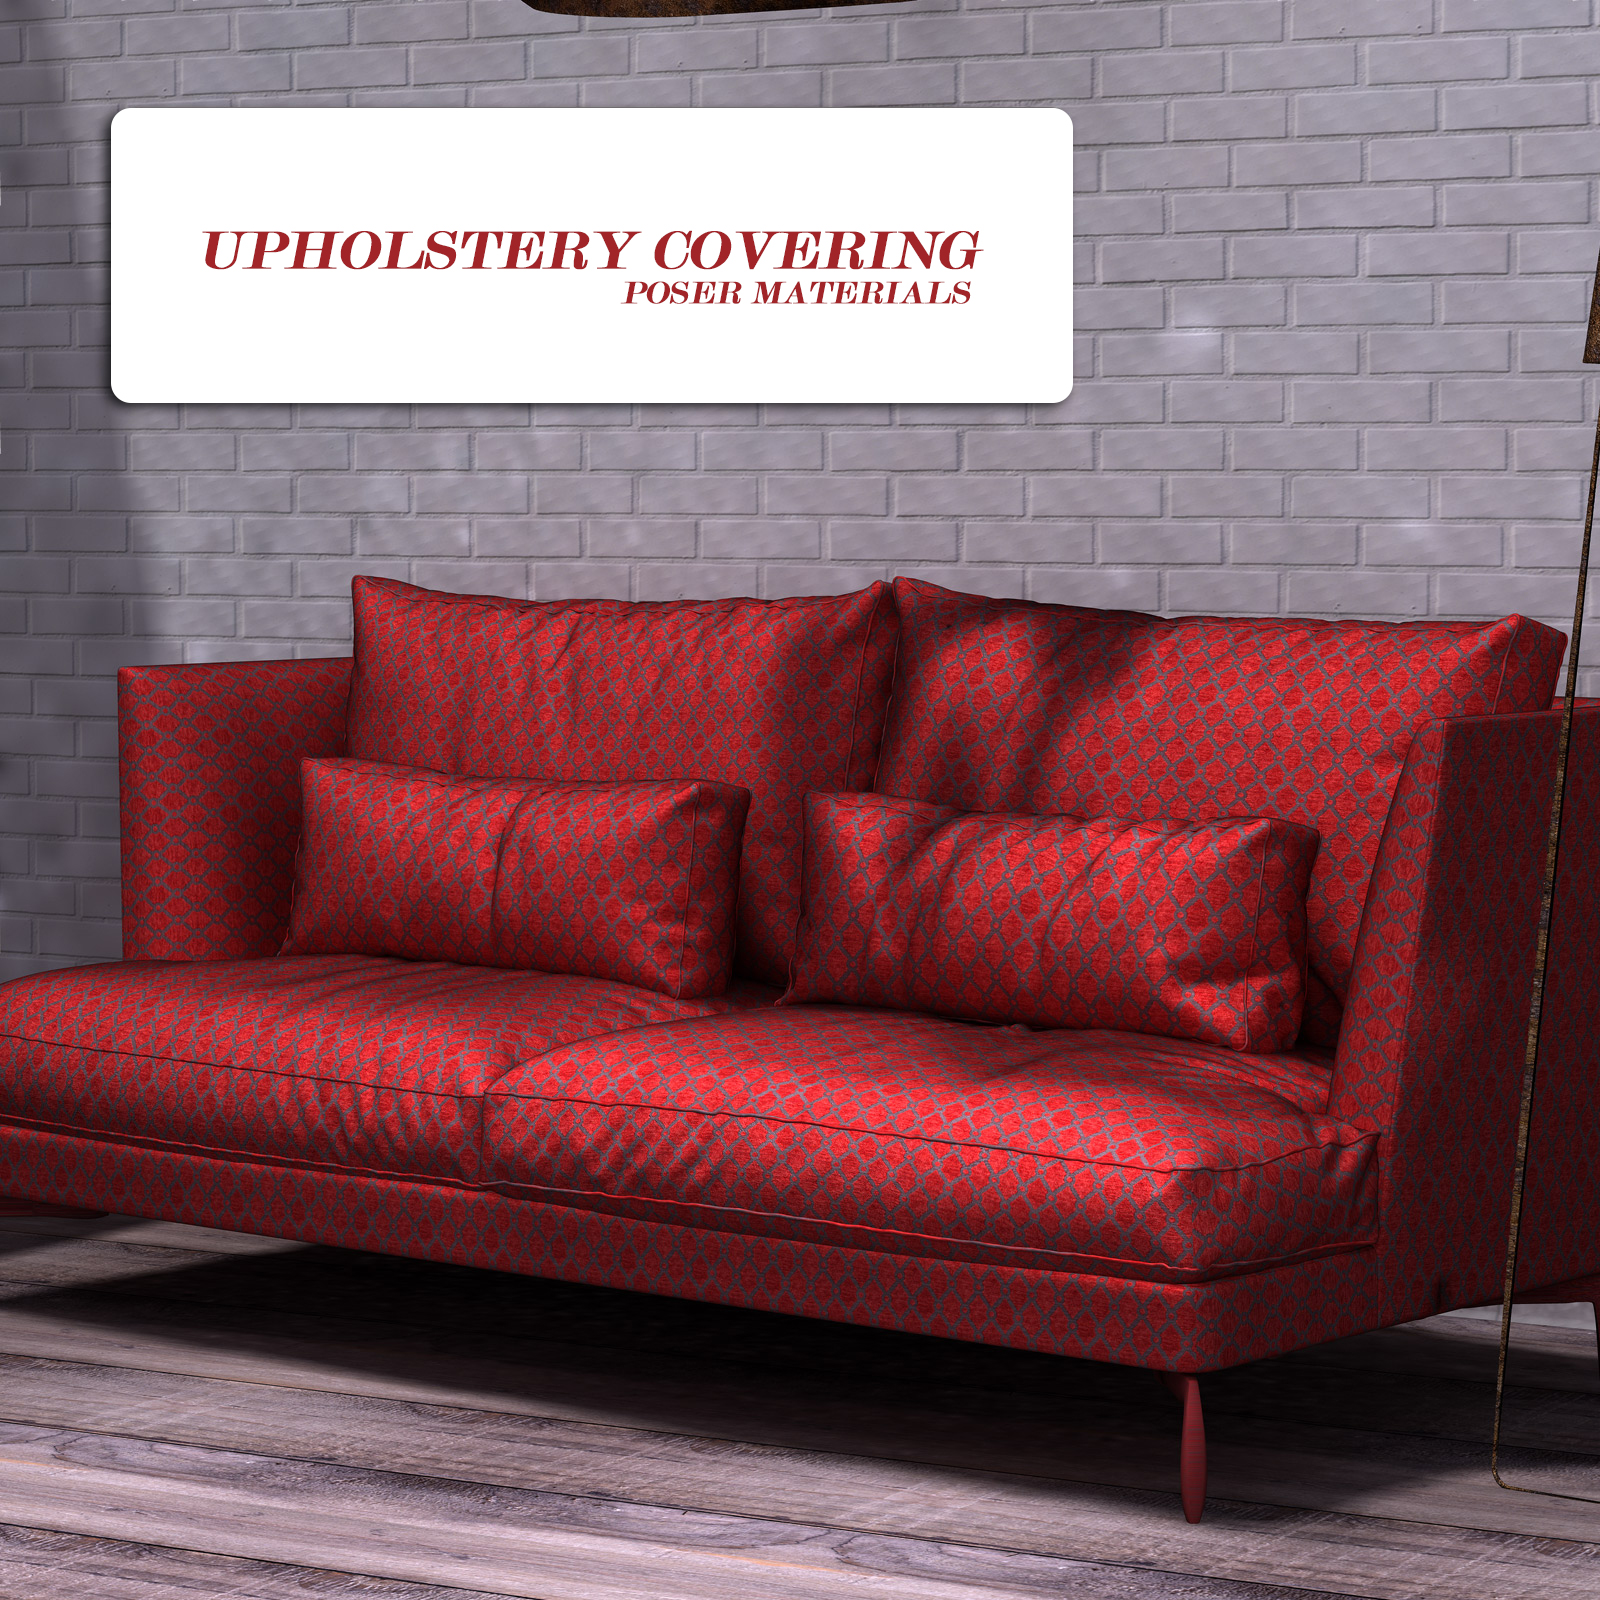 Upholstery Covering :: Poser Materials